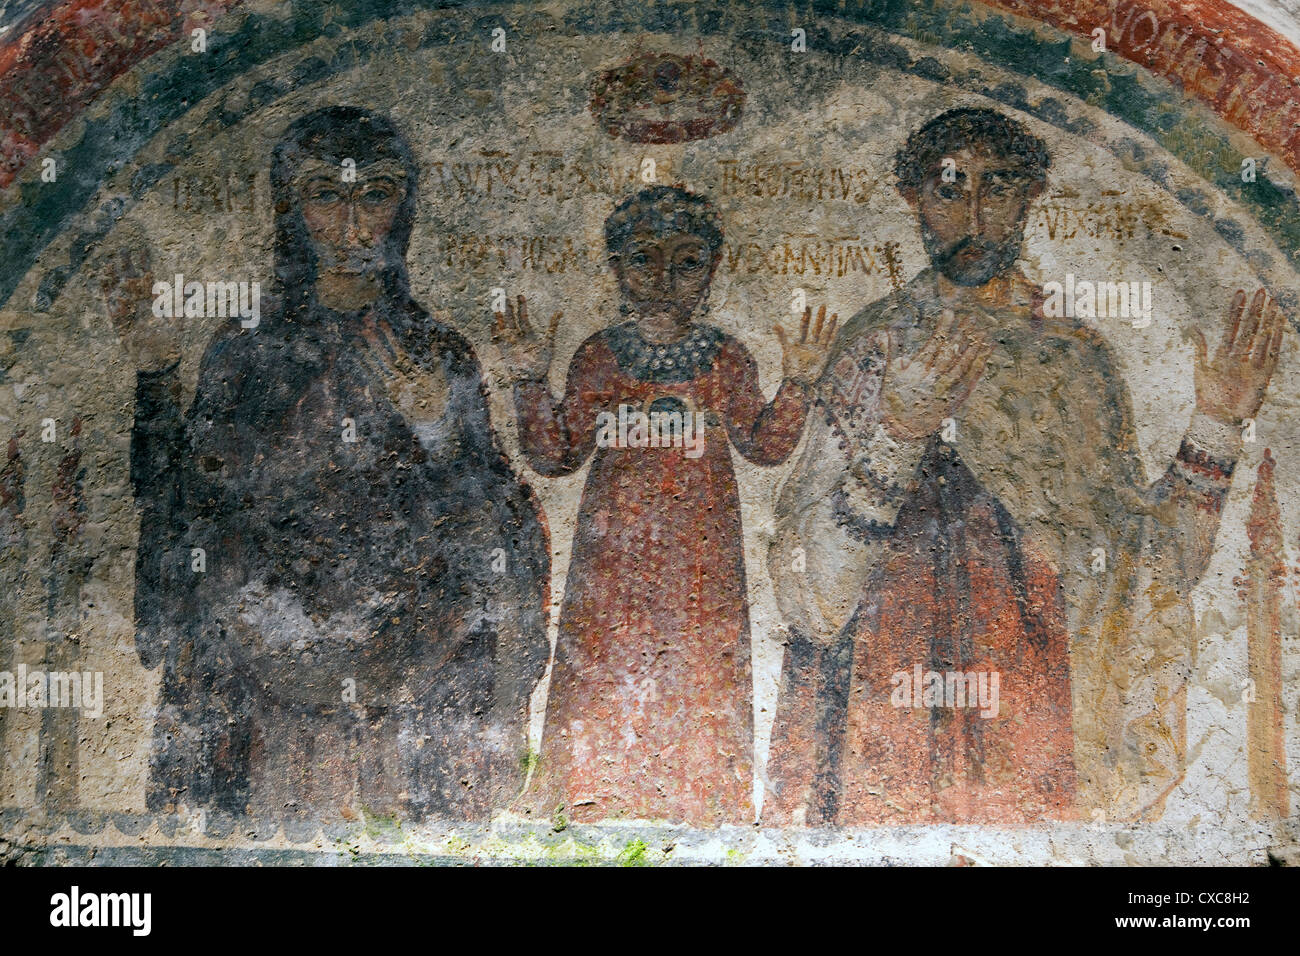 The earliest representation of San Gennaro, patron saint of Naples, in the catacombs of San Gennaro, Naples, Campania, - Stock Image